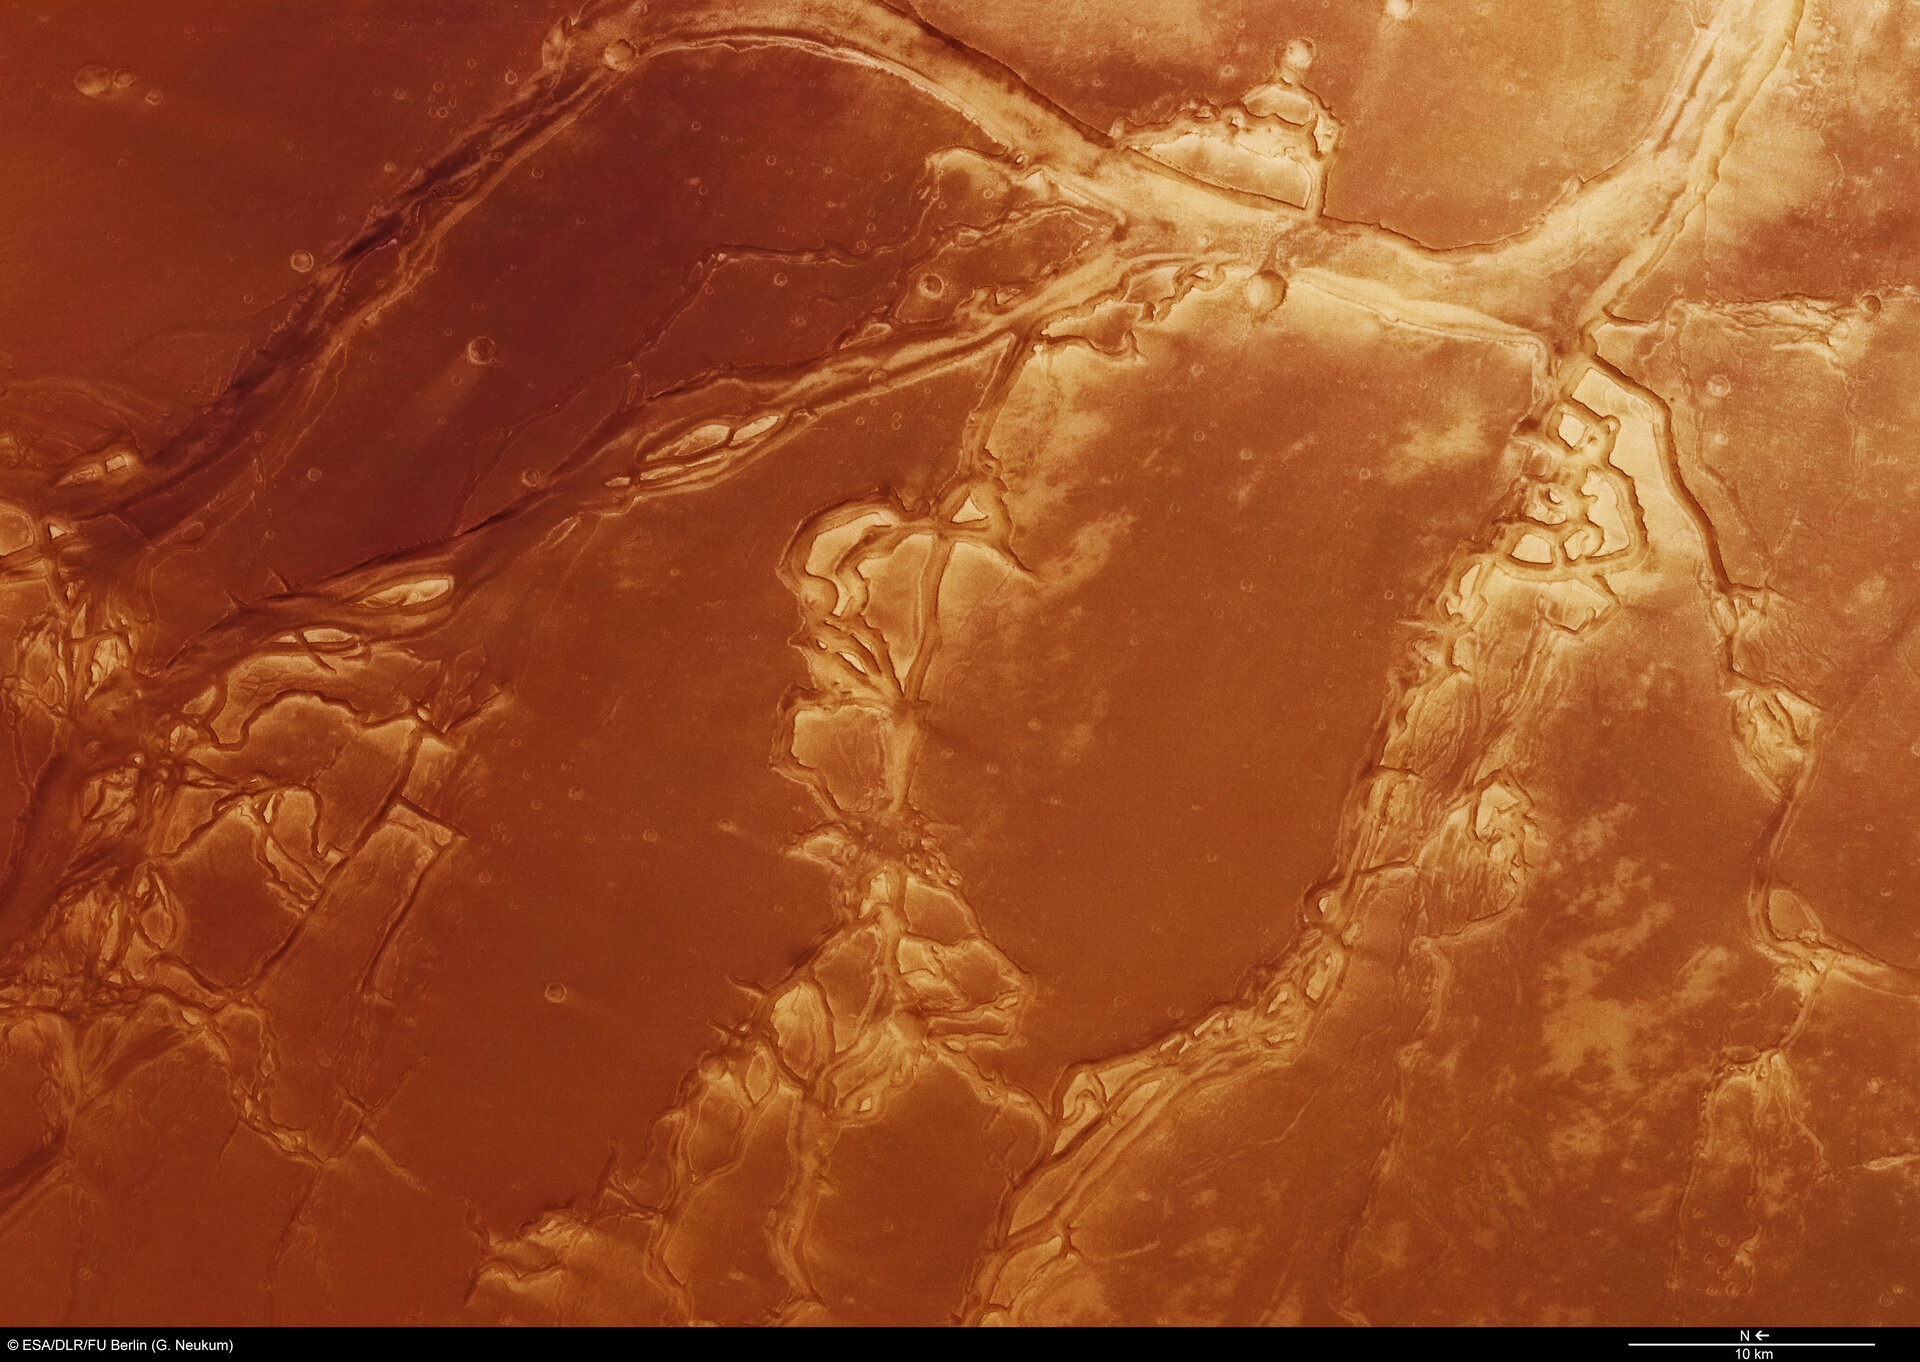 Granicus Valles and Tinjar Valles